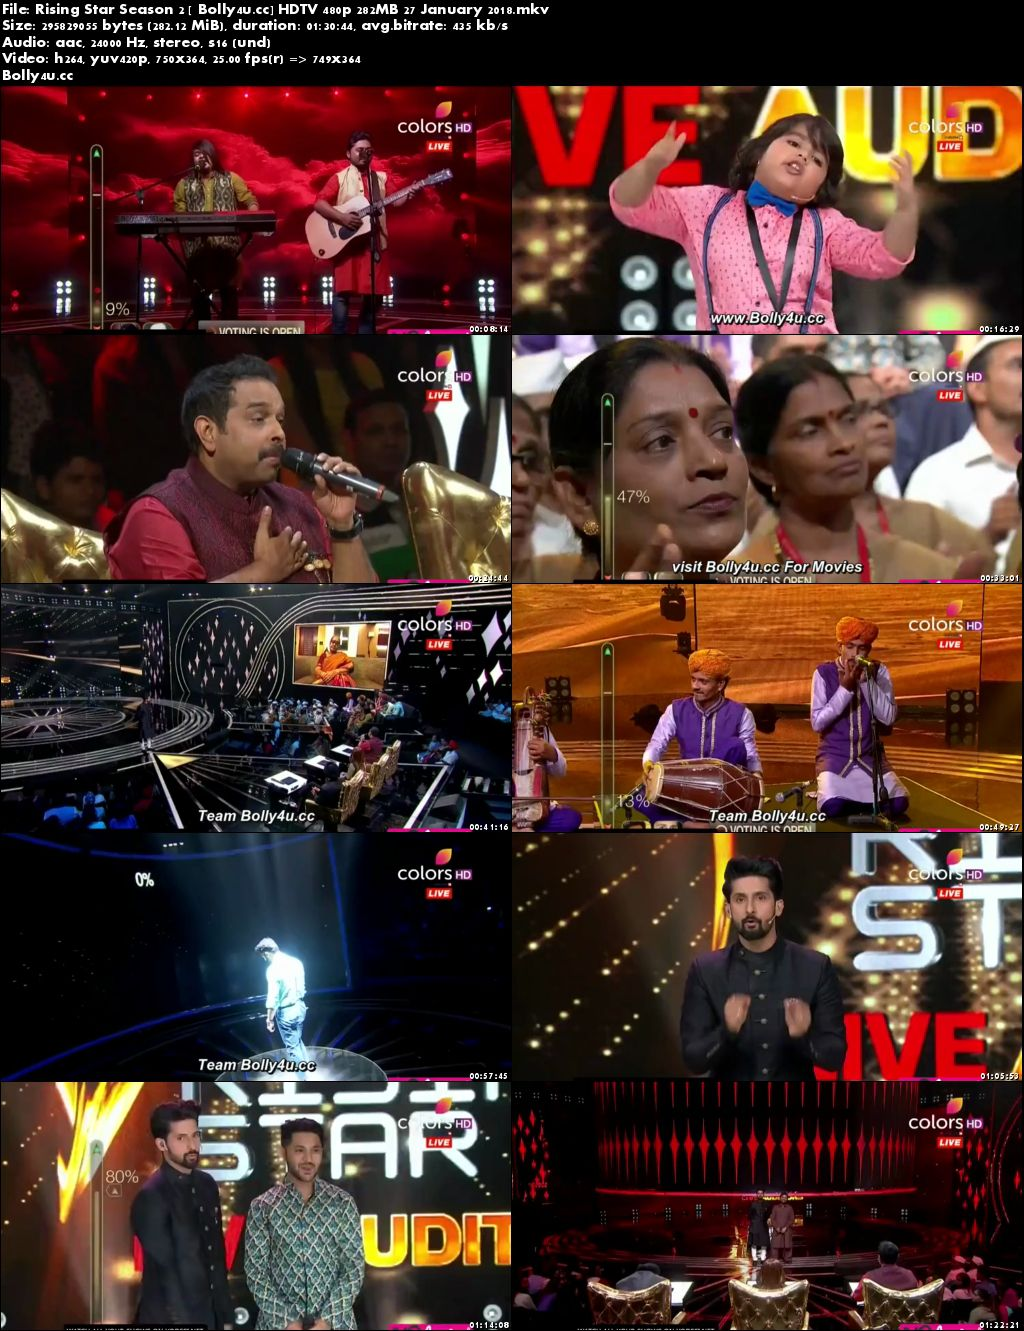 Rising Star Season 2 HDTV 480p 280MB 27 January 2018 Download